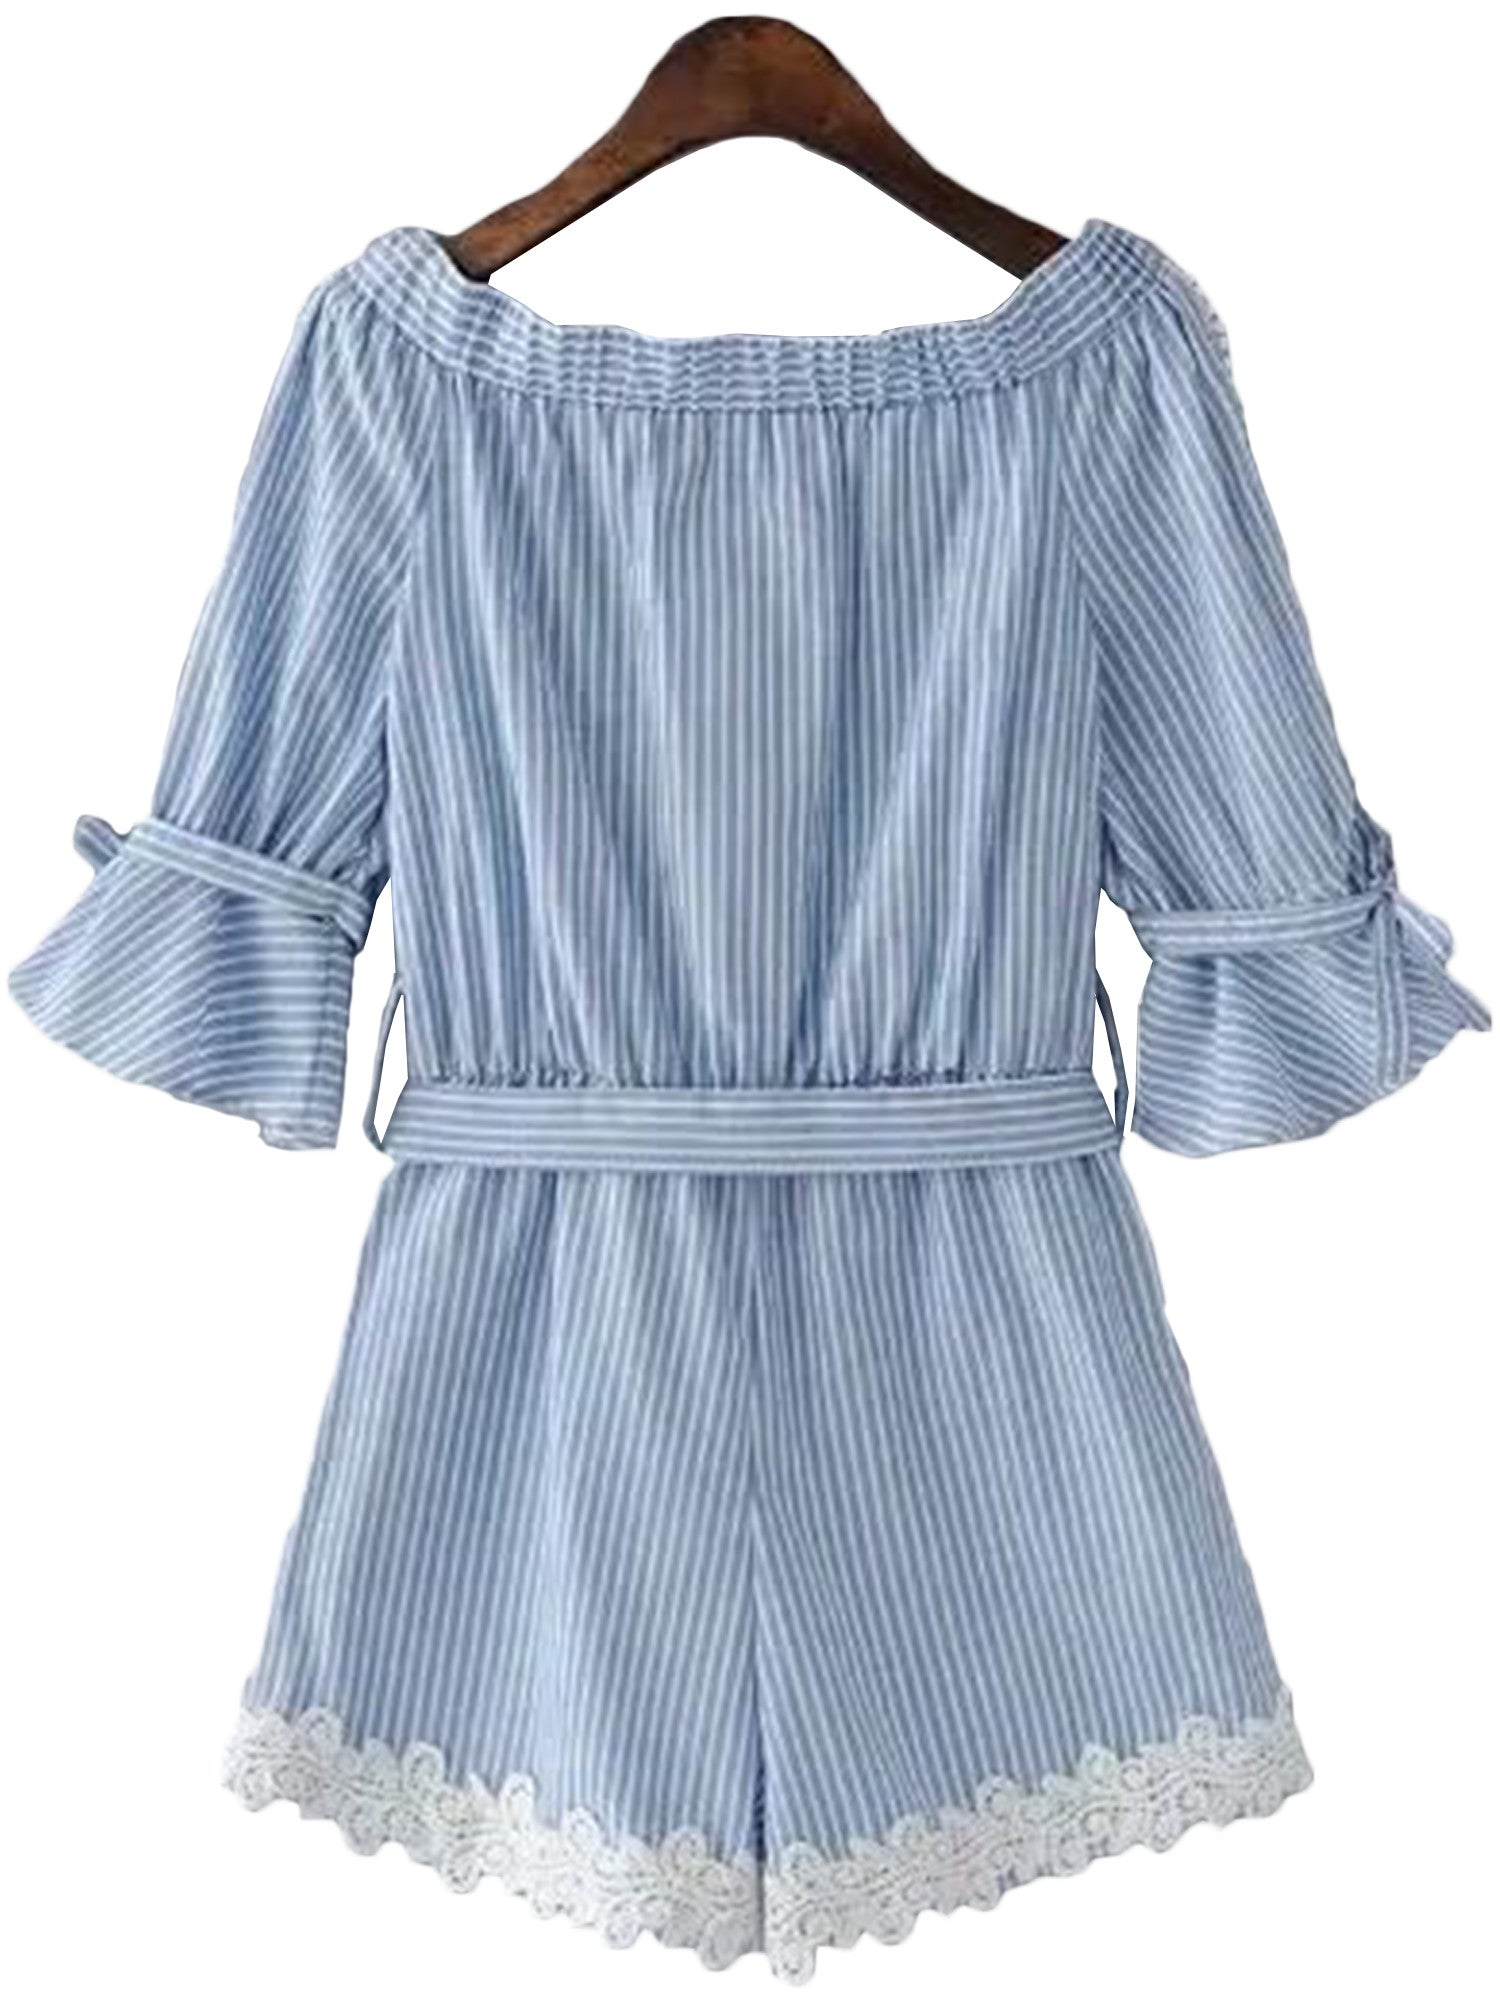 'Petrina' Striped Lace Pleated Off Shoulder Romper